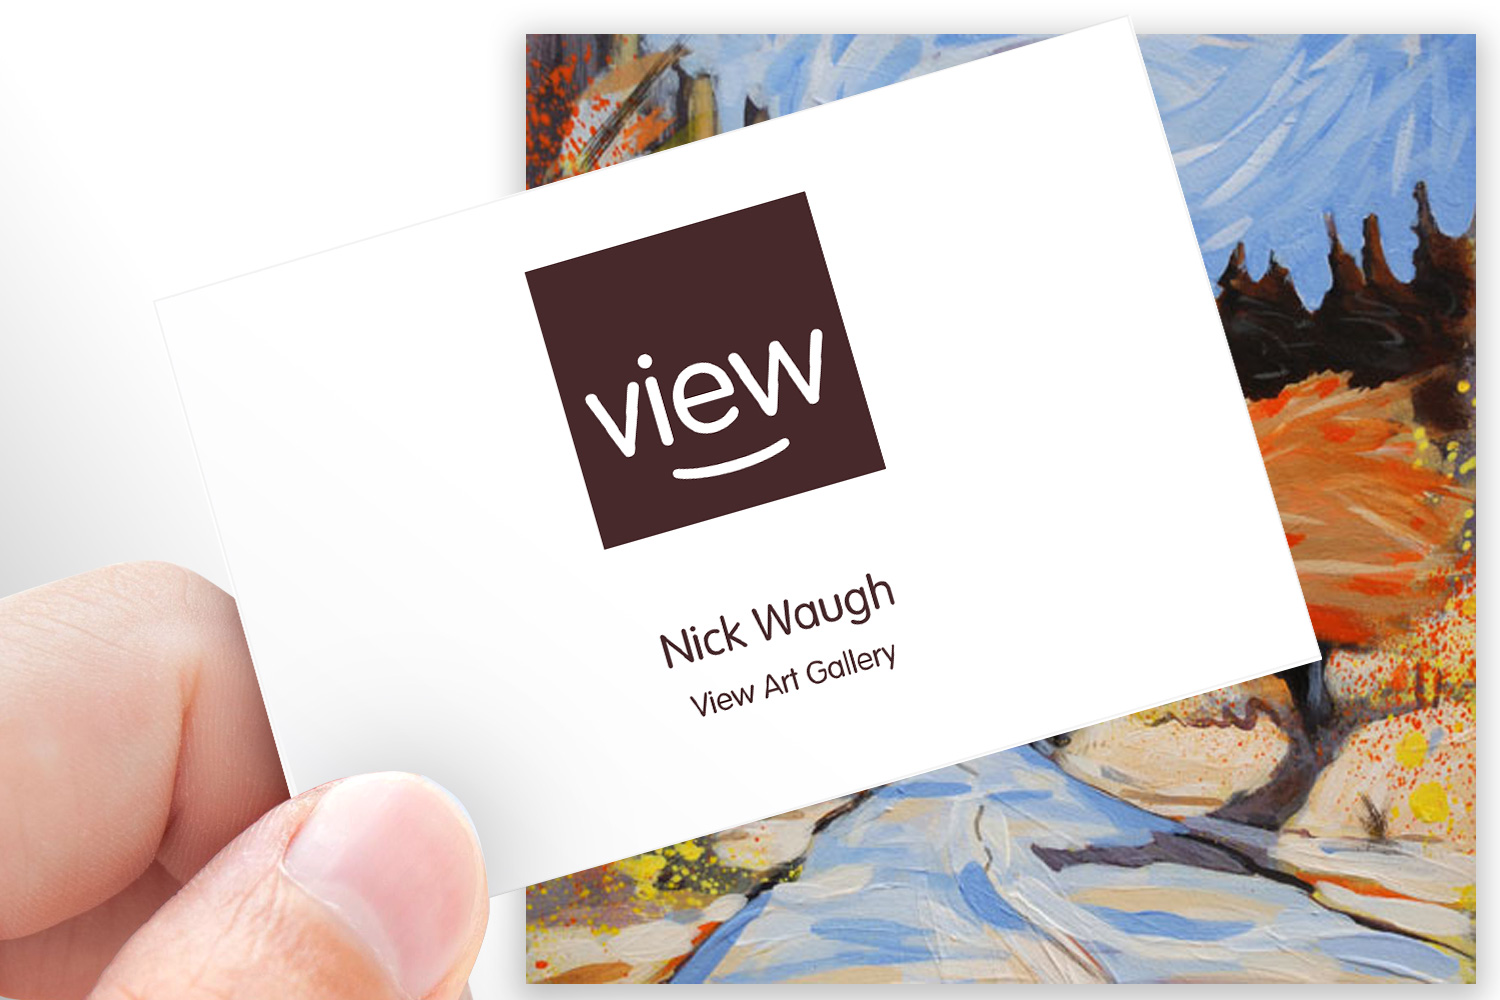 View Art Gallery business card